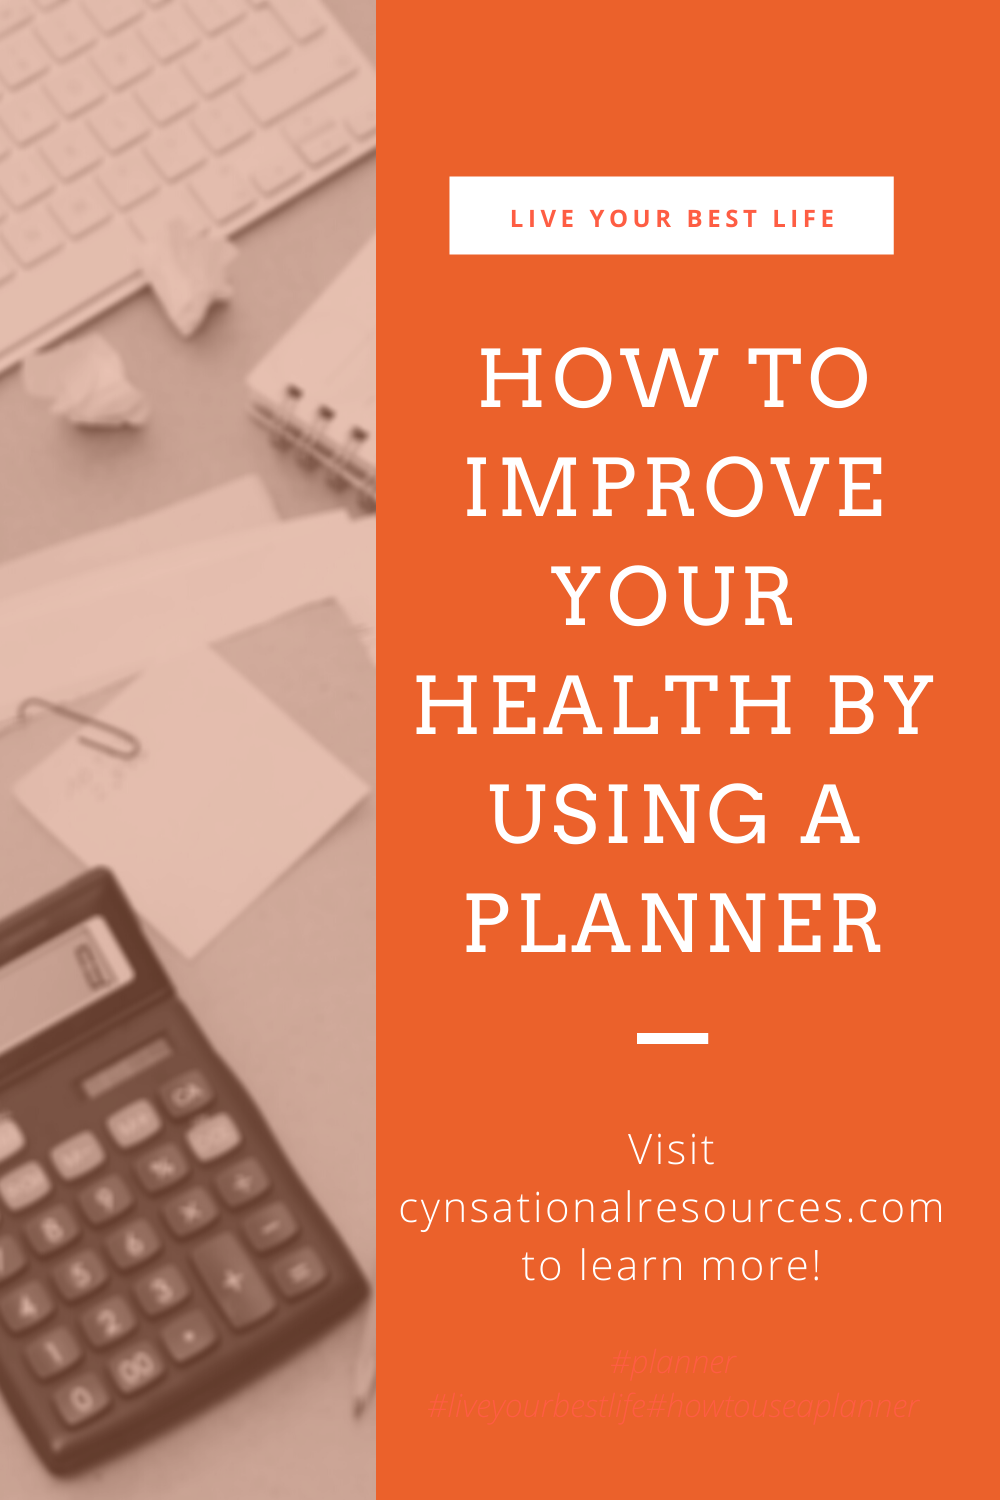 How to Improve Your Health by Using a Planner